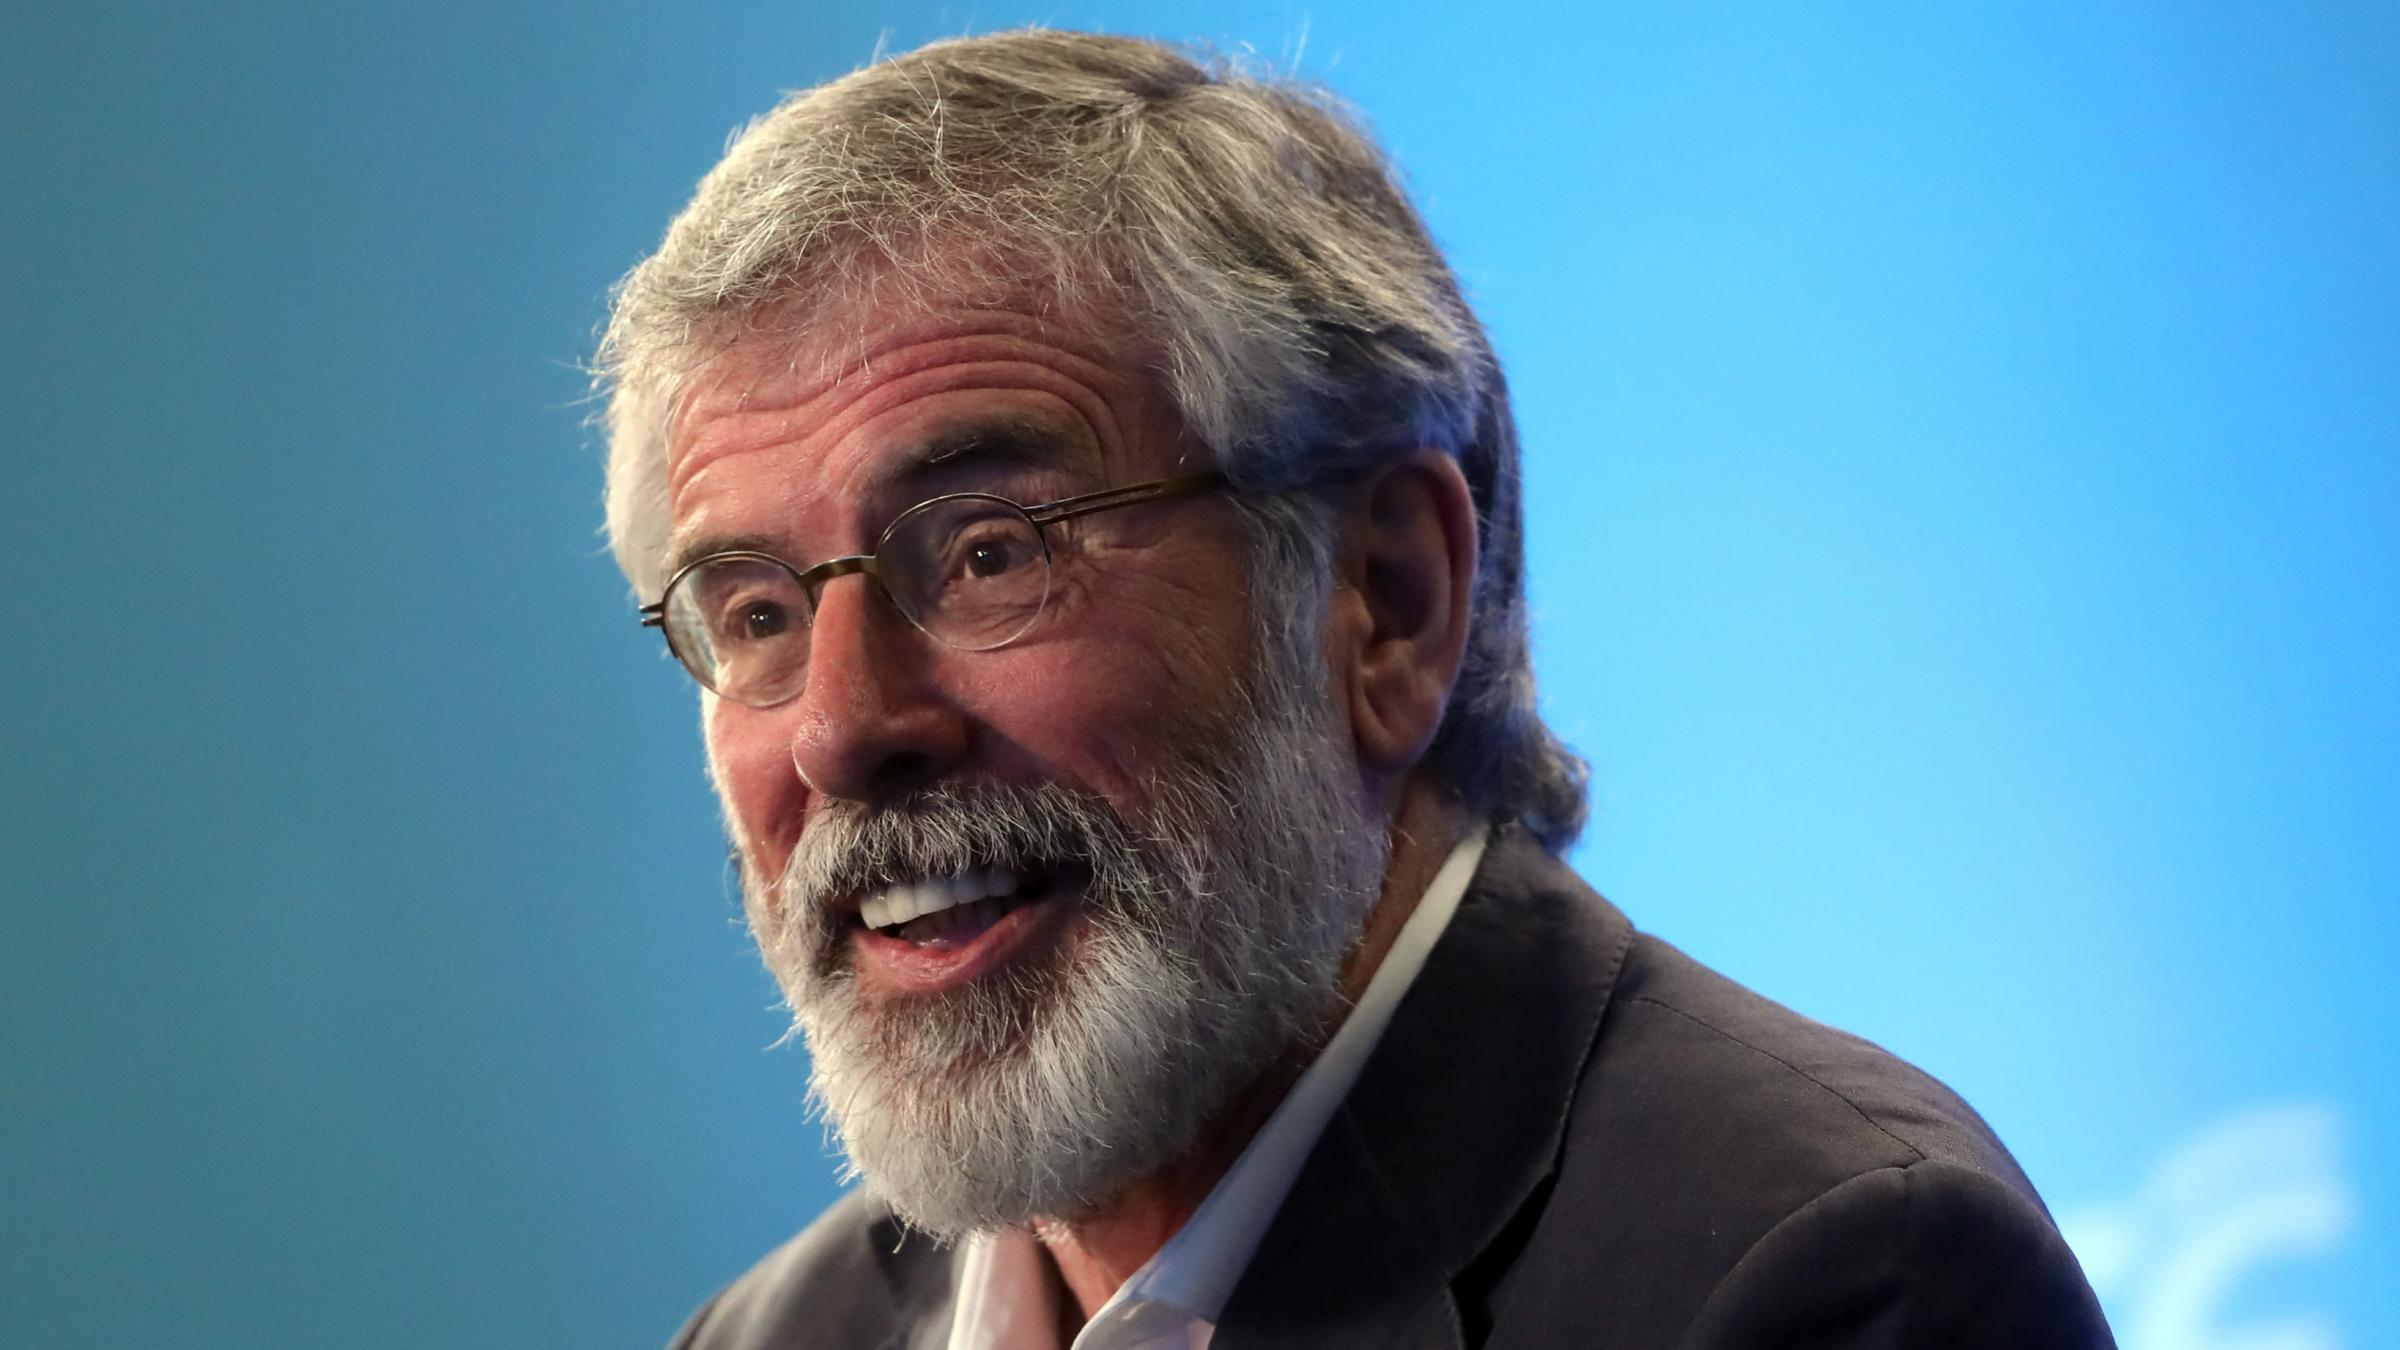 Sinn Fein cautious on DUP, May tie-up but would welcome funding